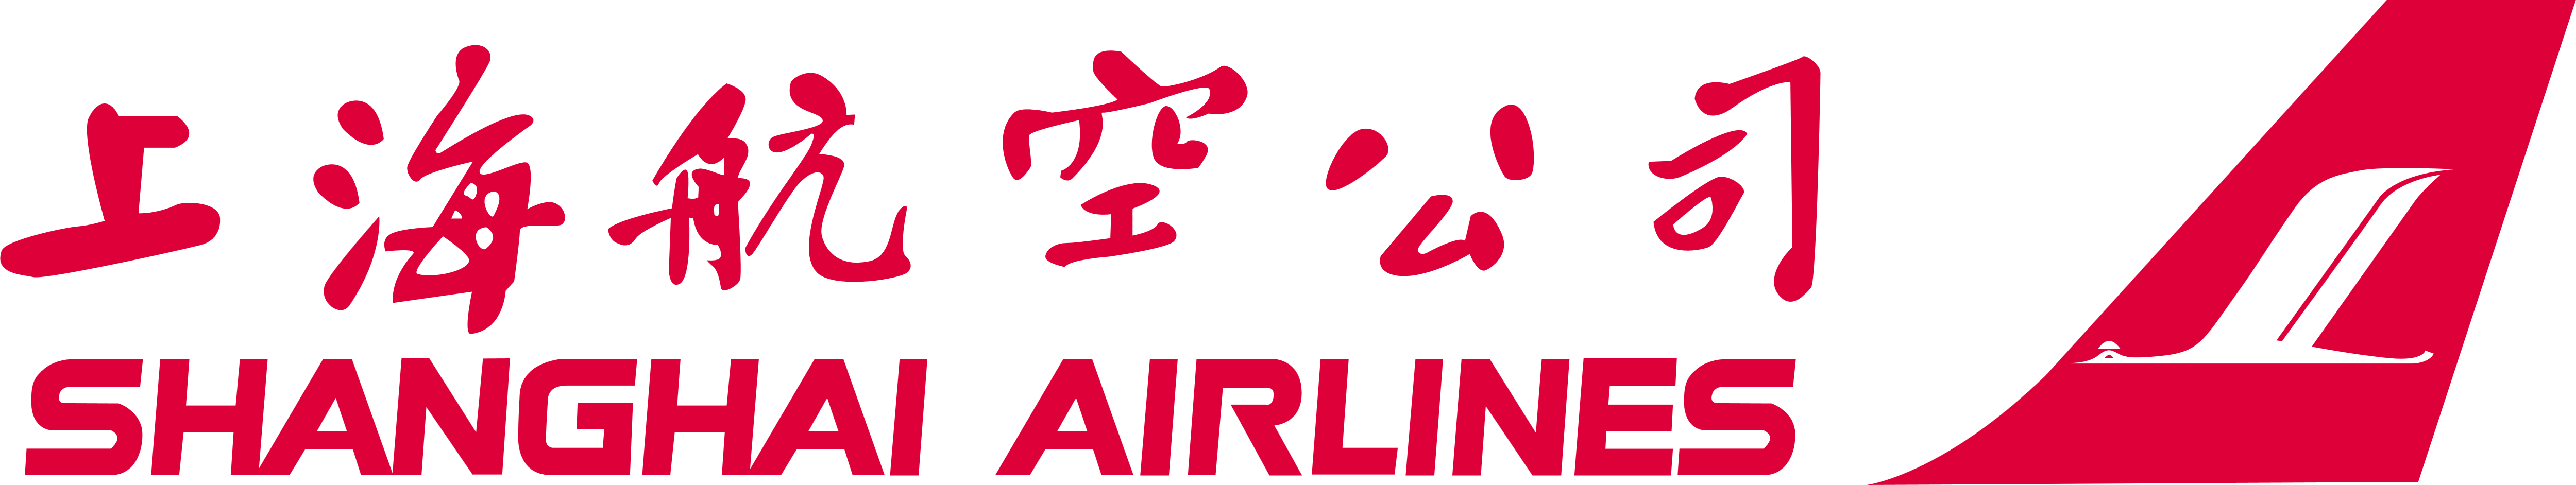 Shanghai Airlines + China Eastern picture